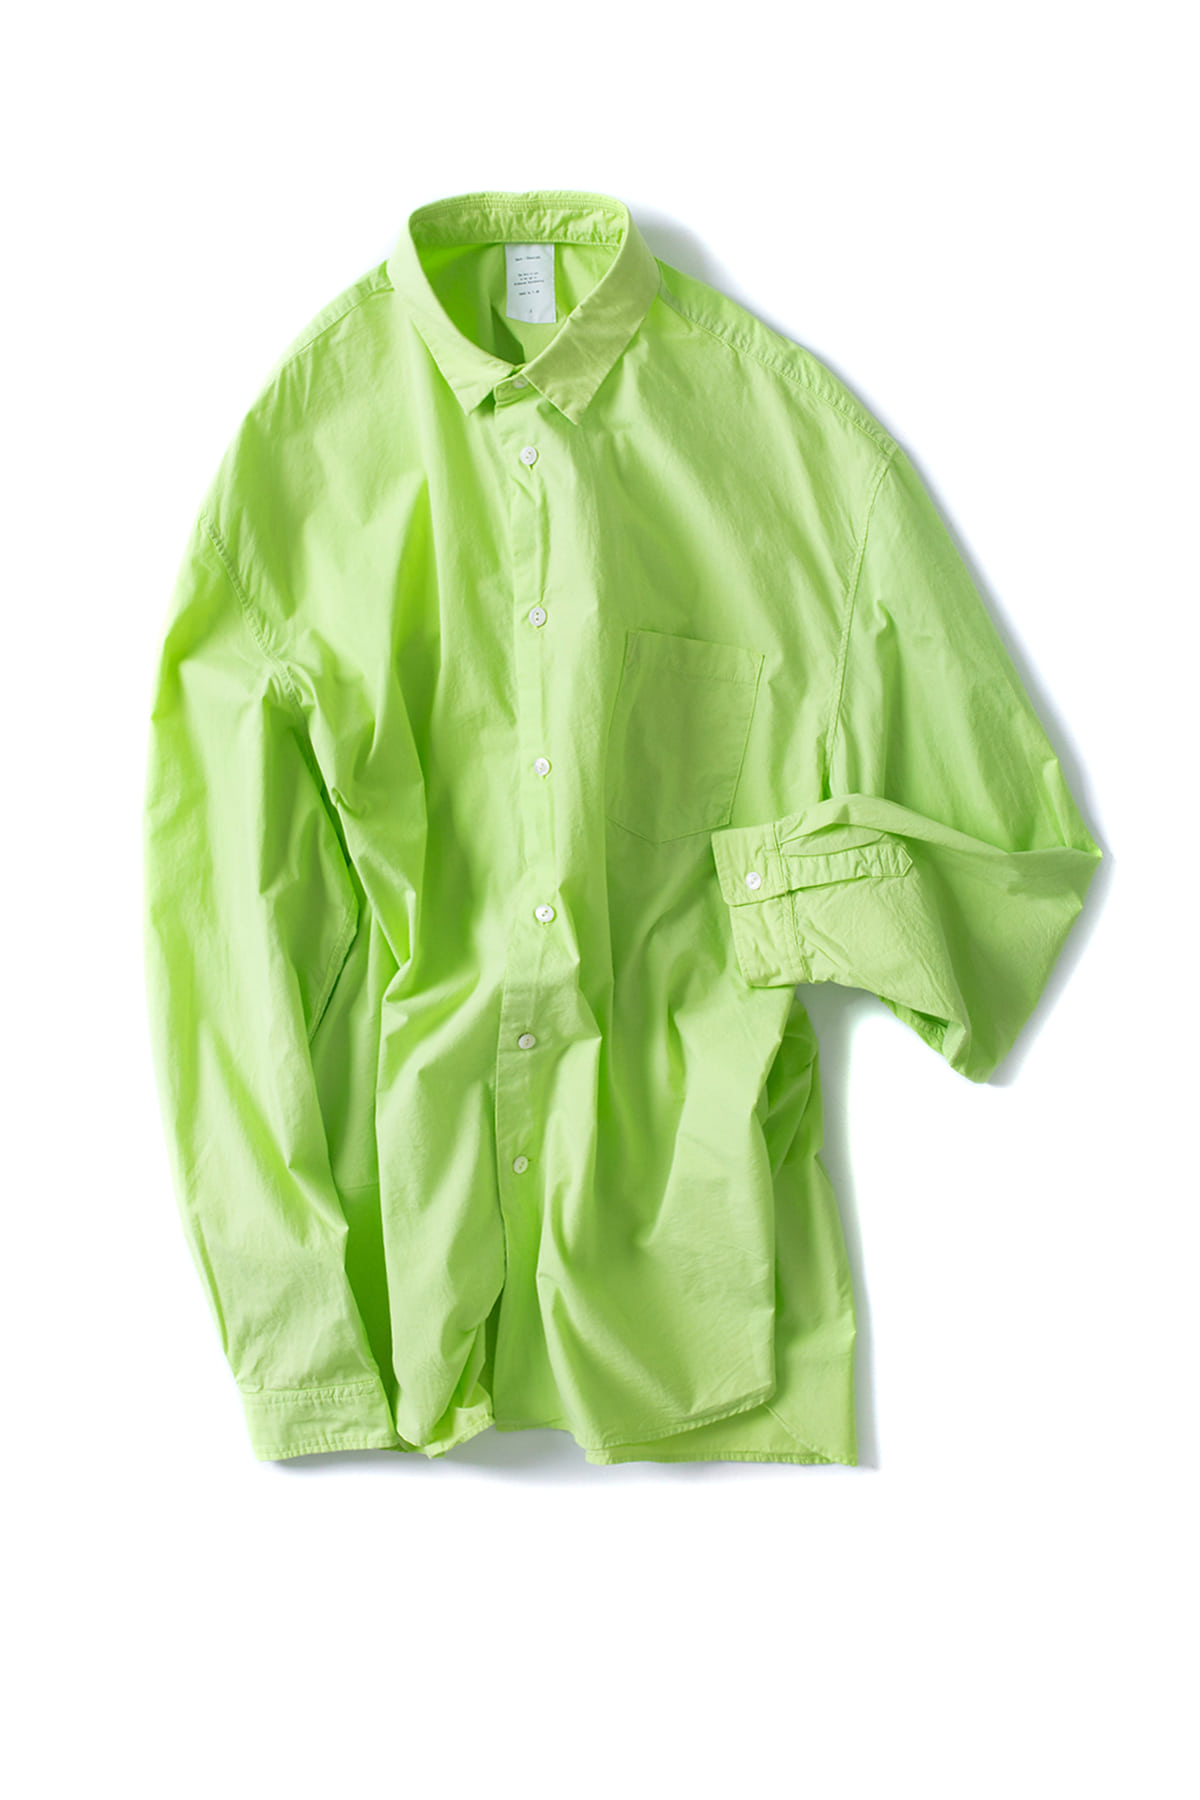 Name : Garment Dyed Loose Fit Shirt (Line Green)